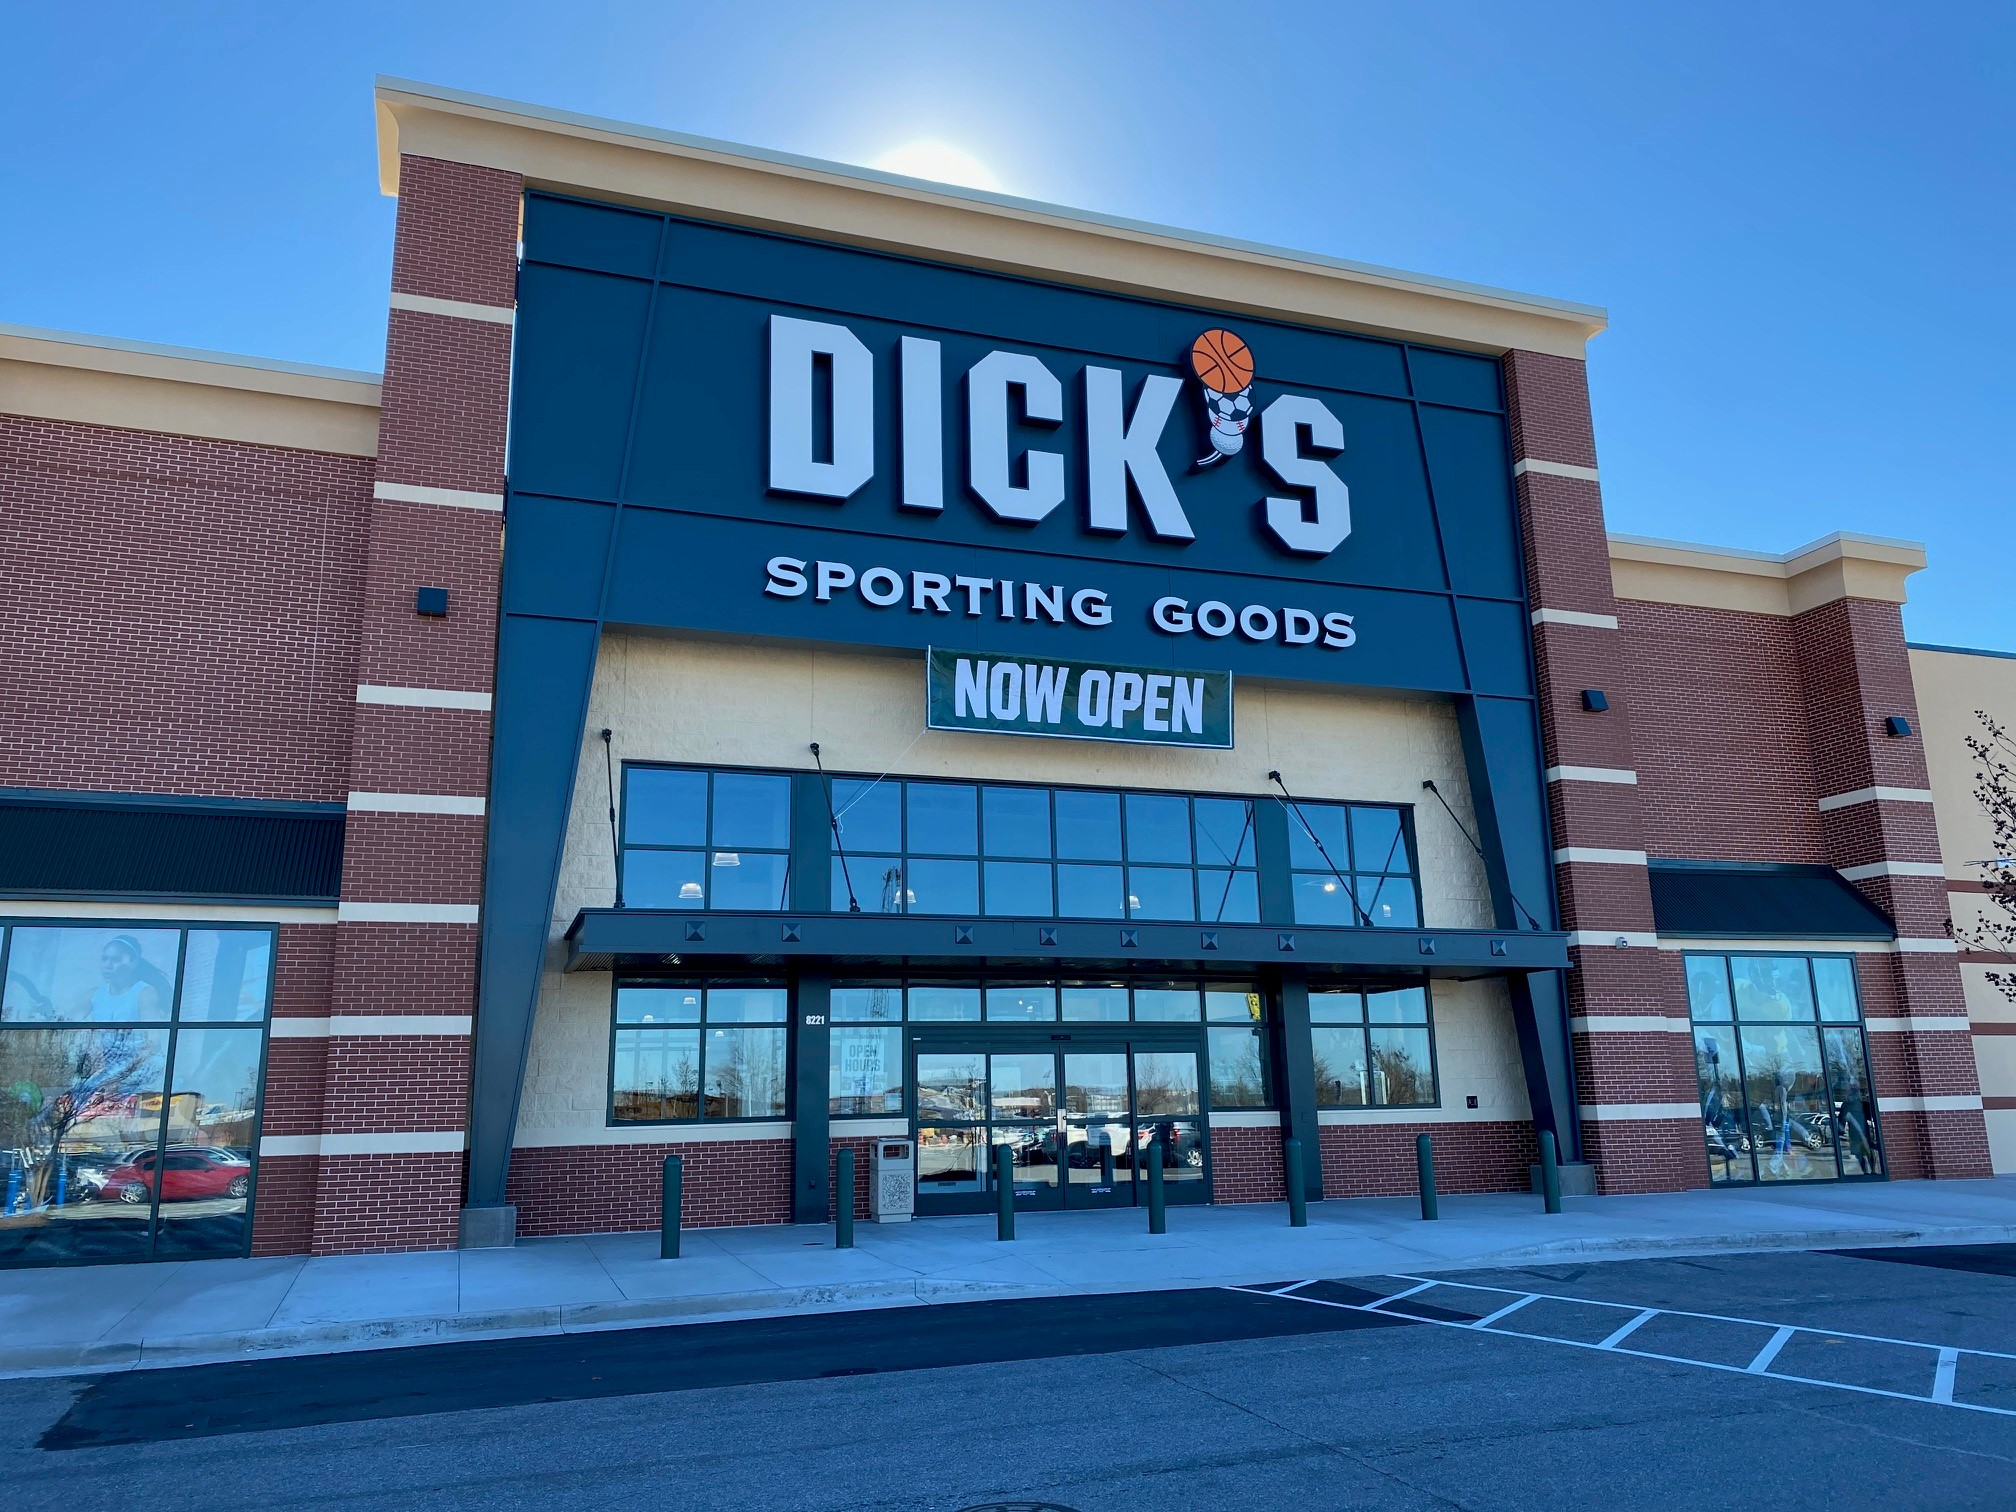 Store front of DICK'S Sporting Goods store in Concord, NC